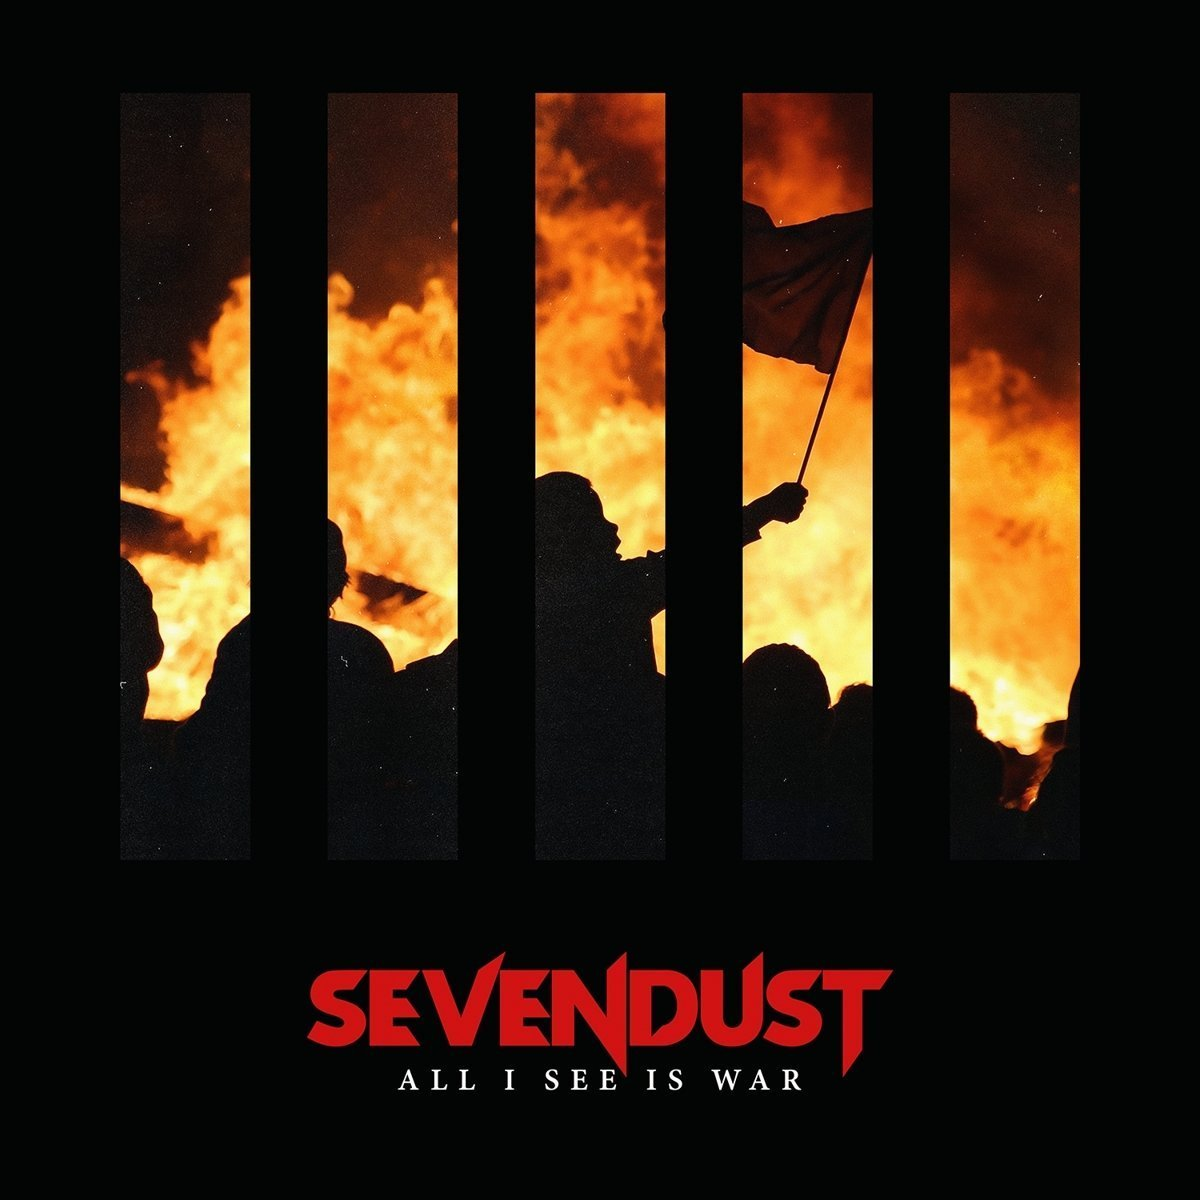 SEVENDUST - All I See is War cover